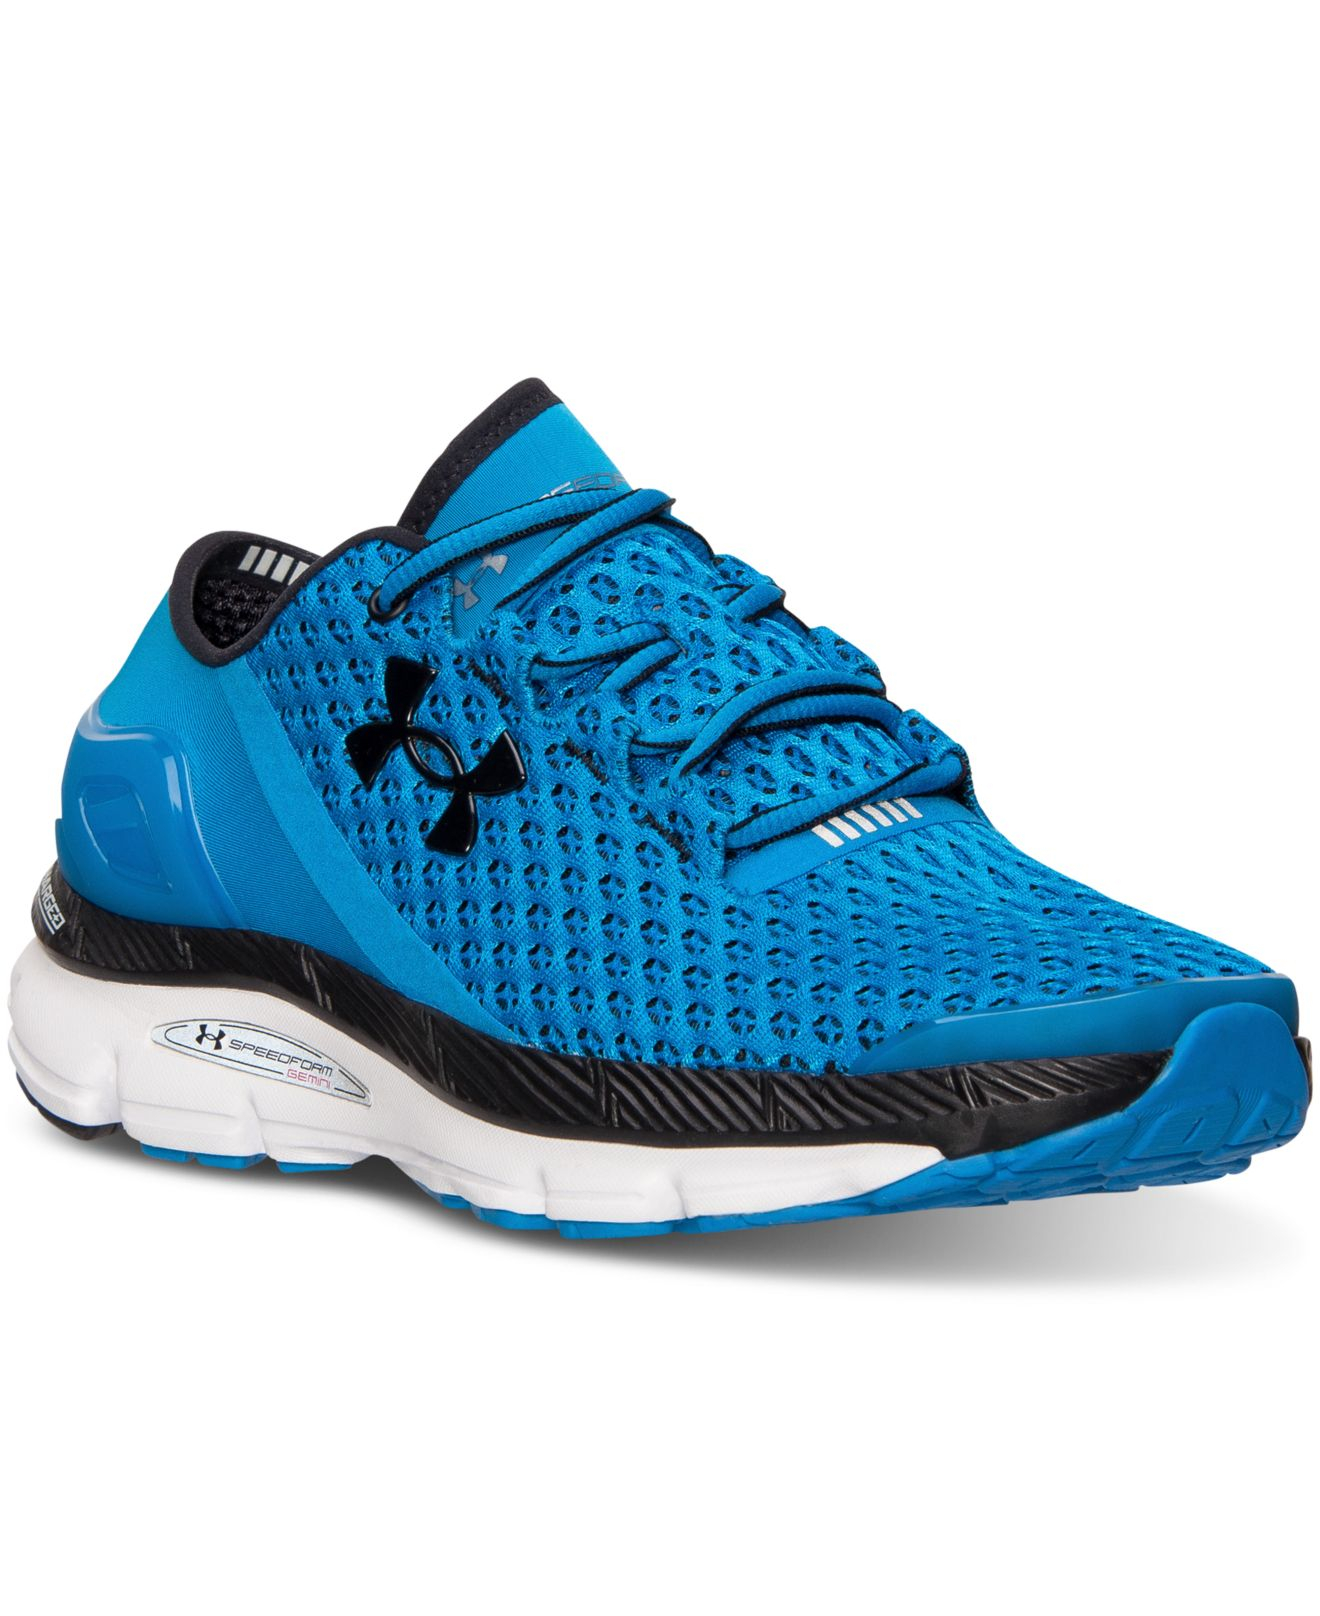 Good Running Shoes For Men Under